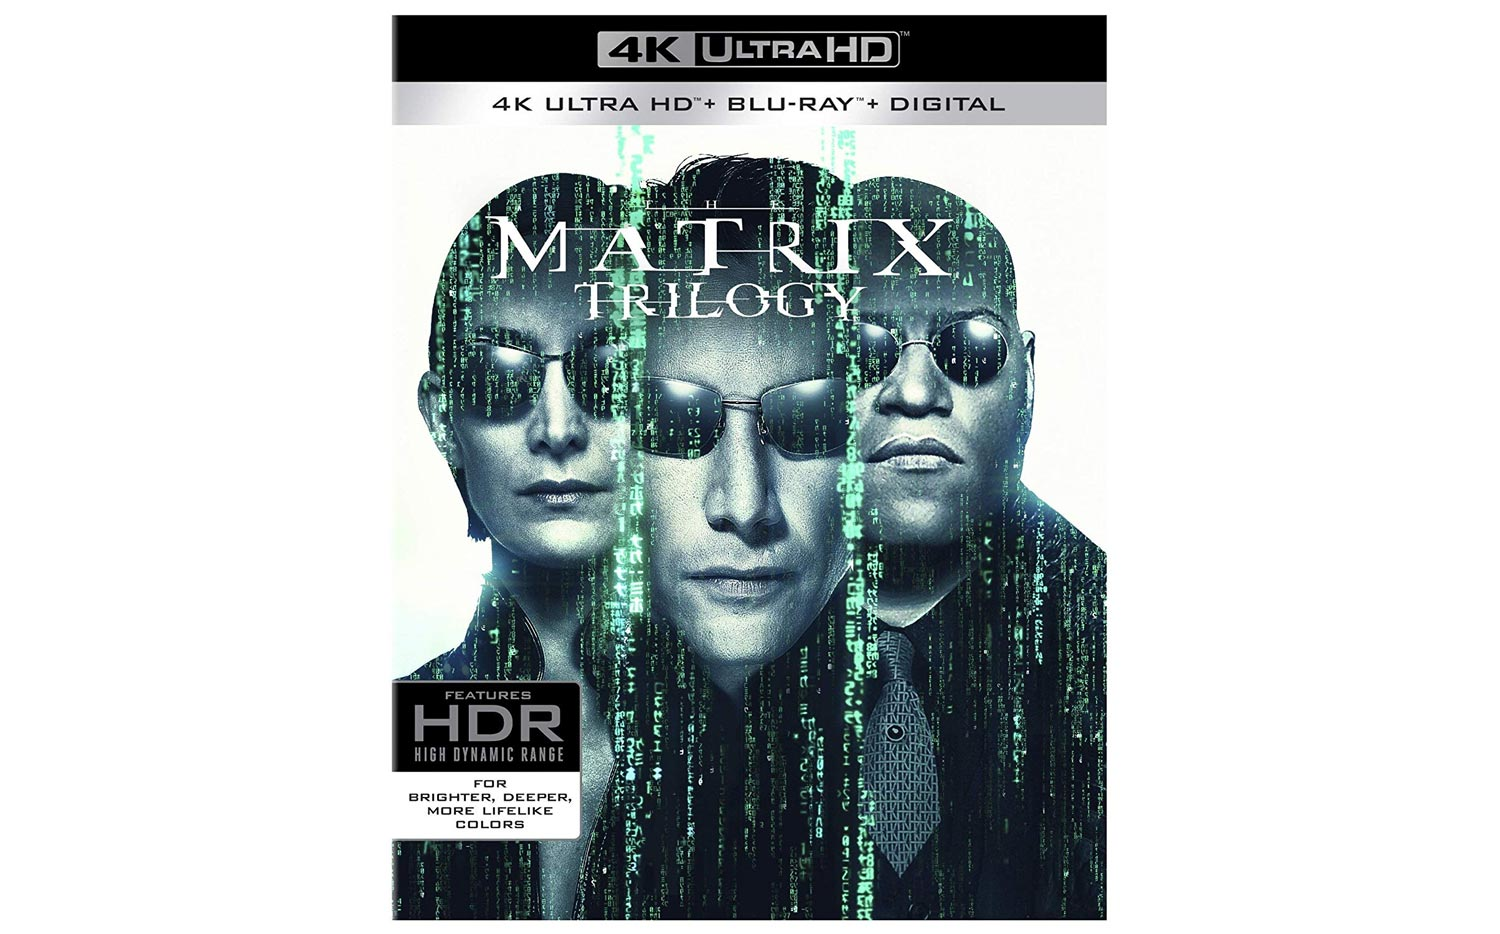 The Matrix trilogy will be re-released in 4K Dolby Vision